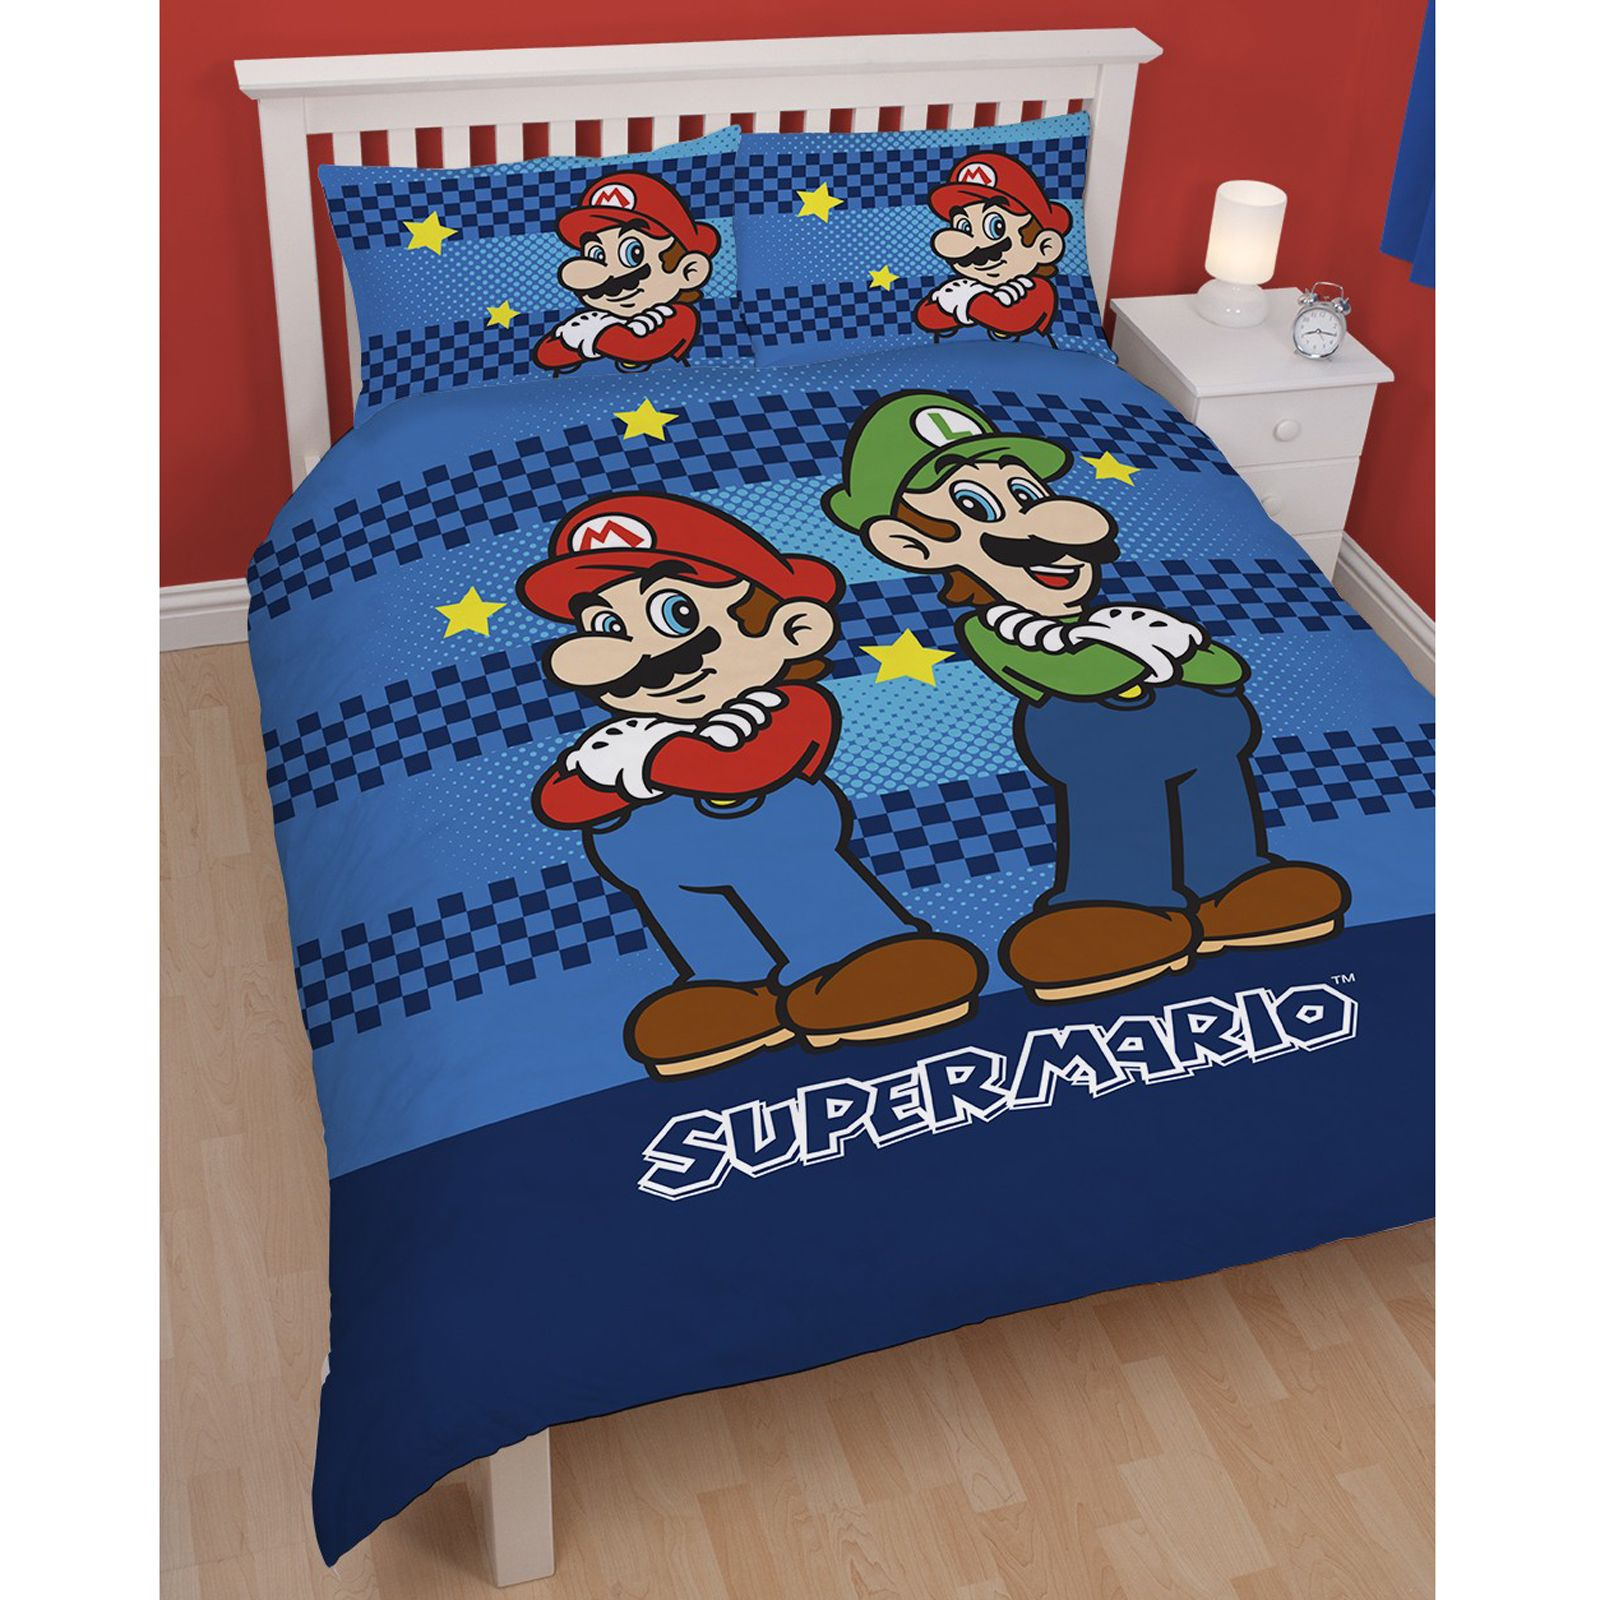 nintendo super mario brothers bedding duvet cover sets boys bedroom